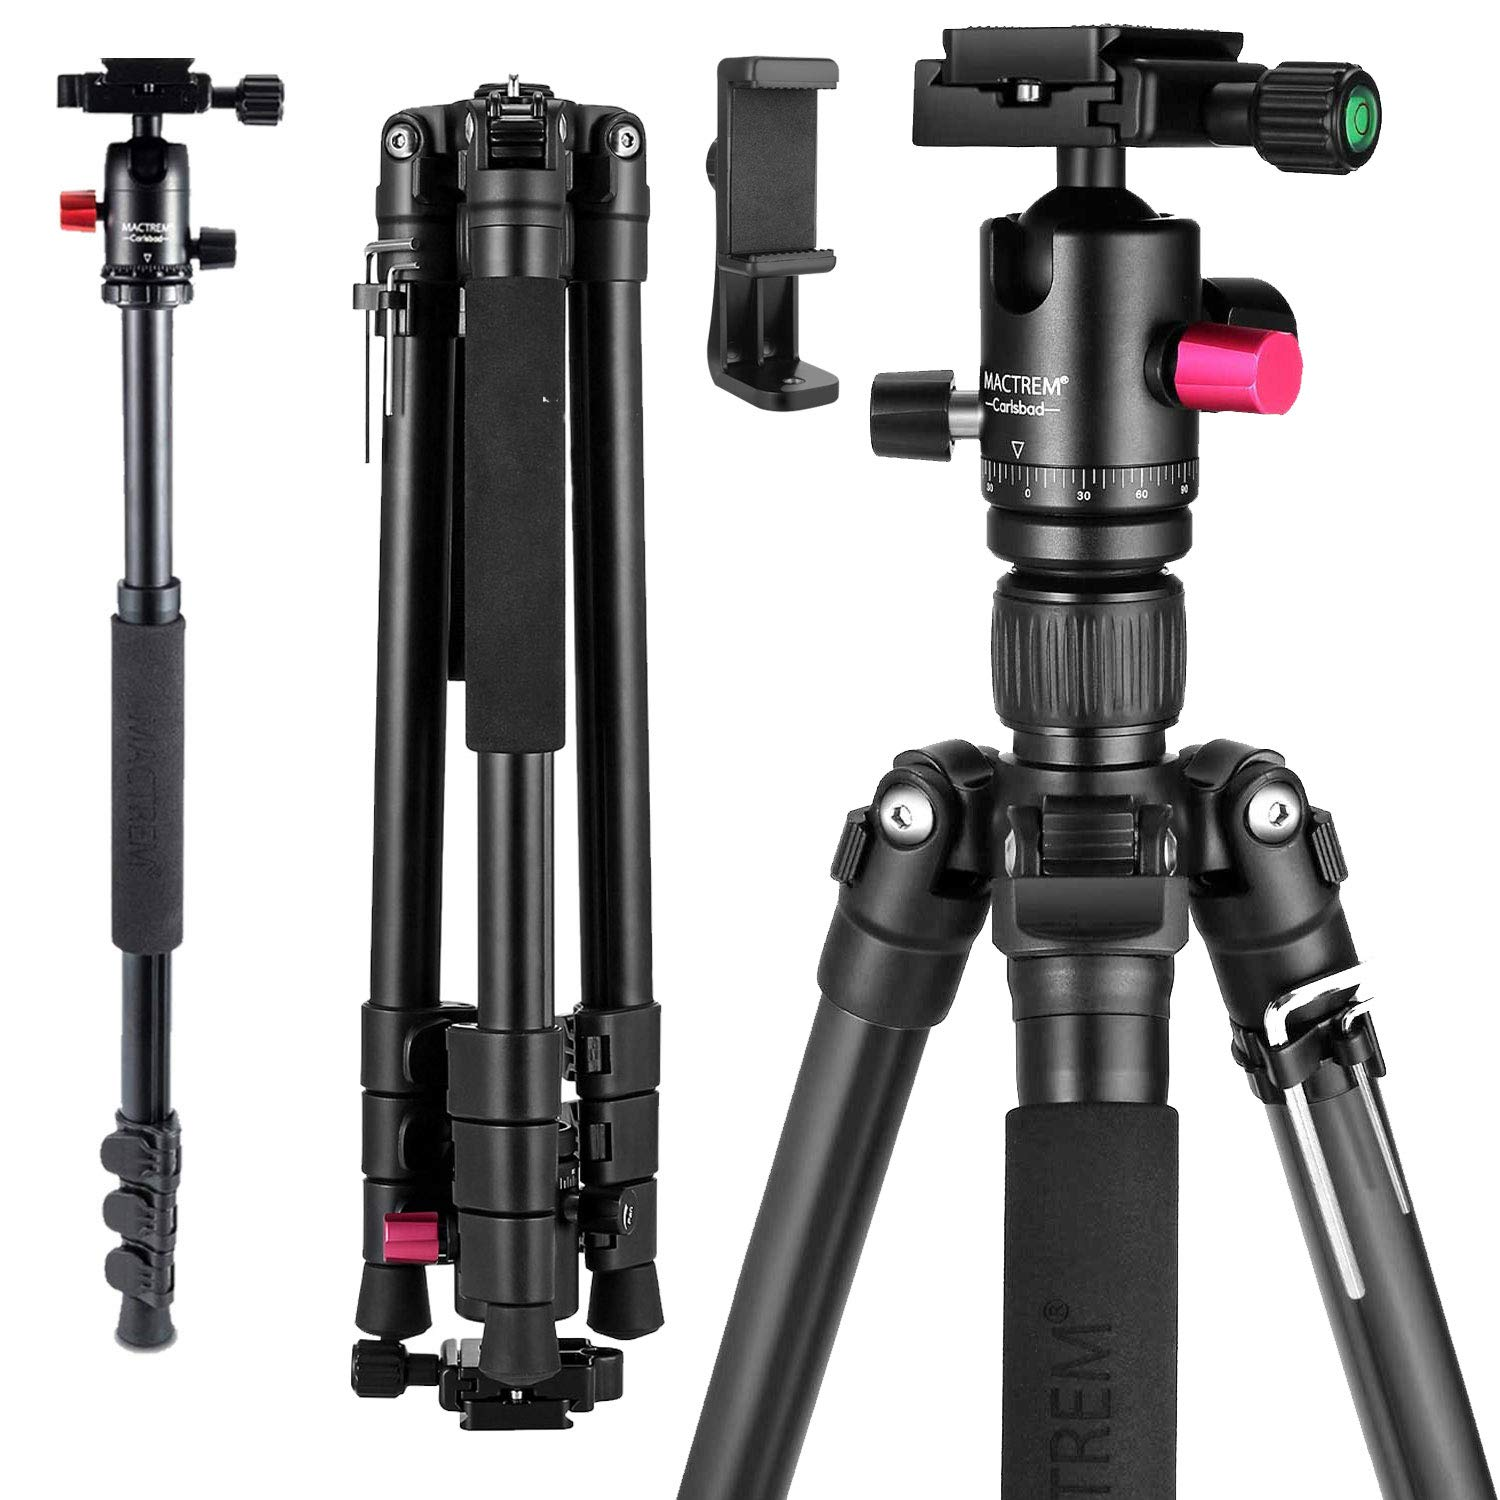 MACTREM Professional Camera Tripod with Phone Mount, 62